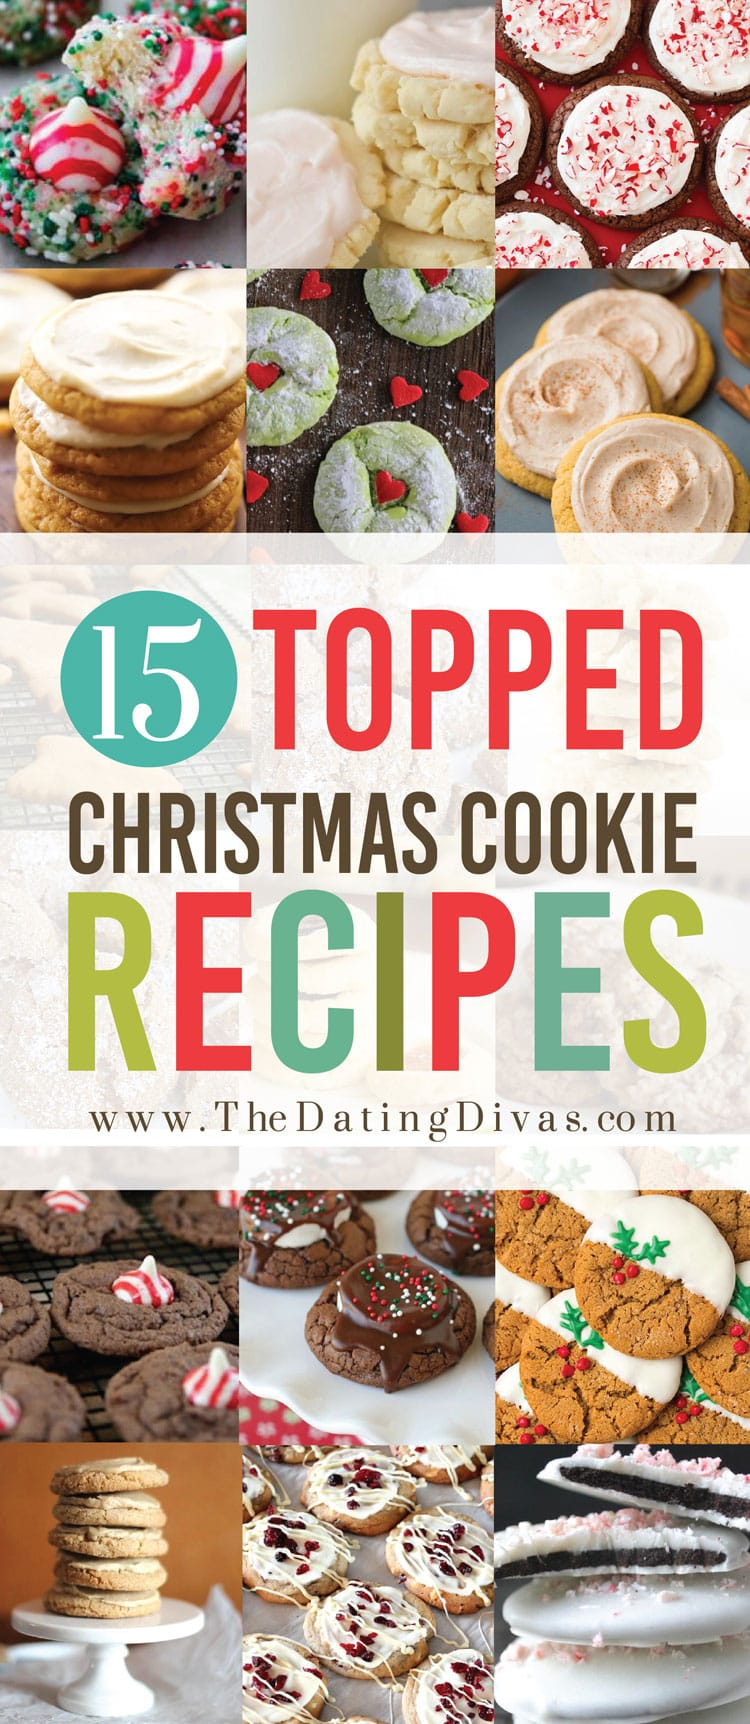 Topped Christmas Cookies